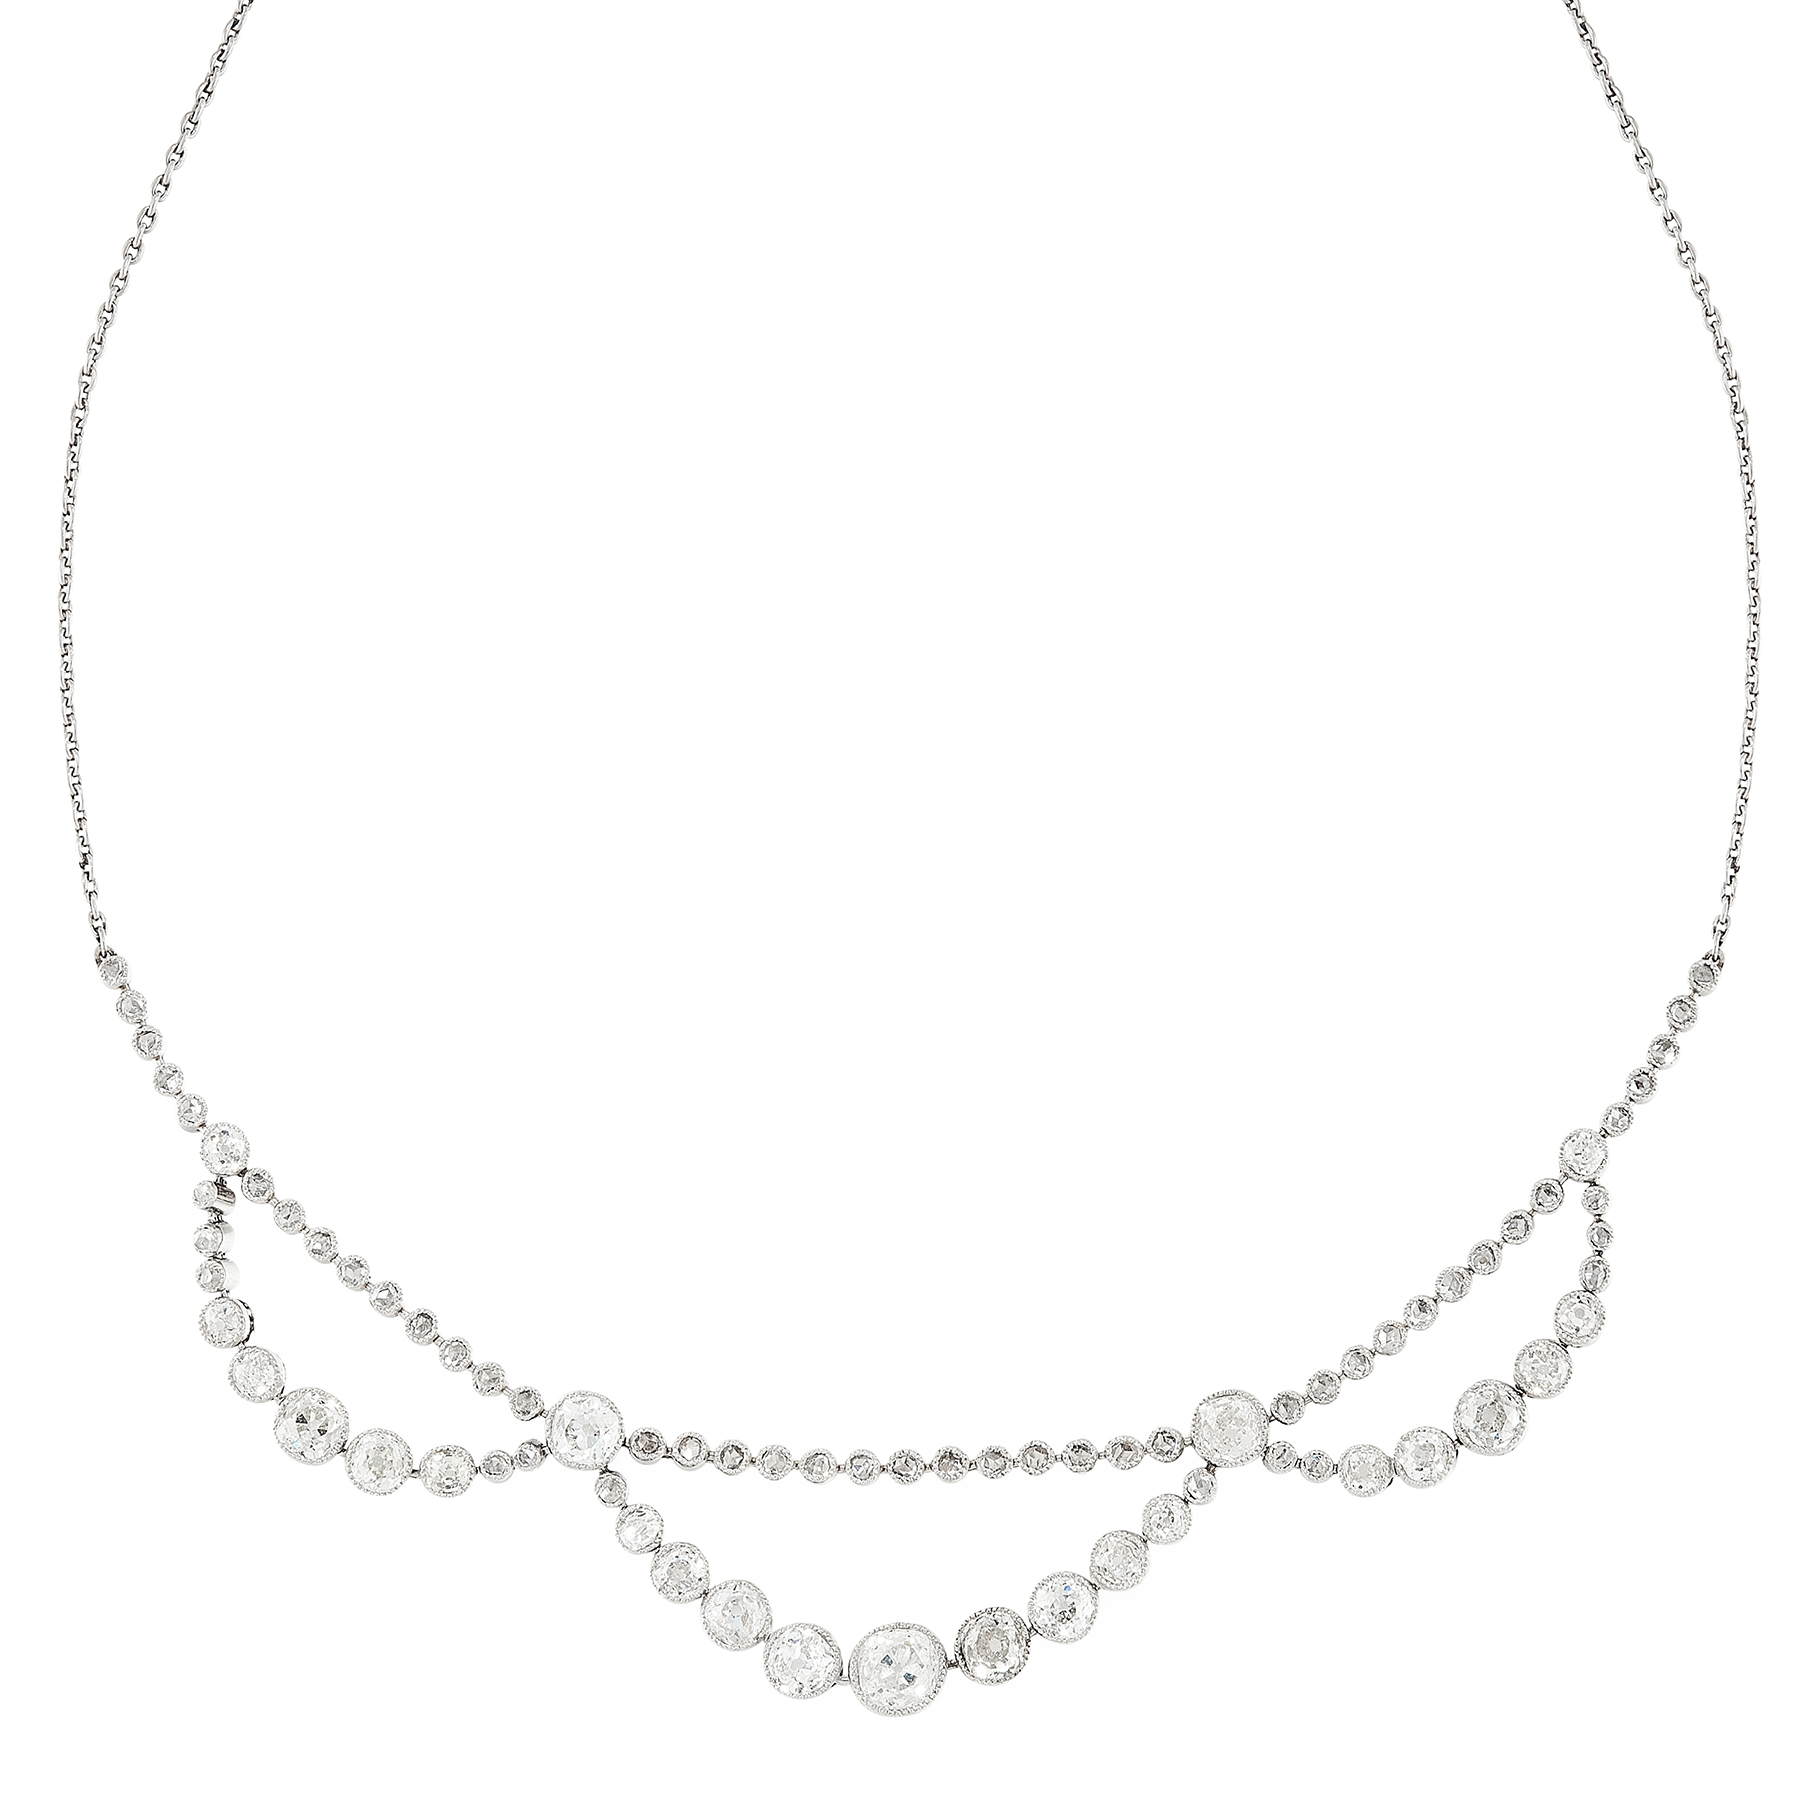 AN ART DECO DIAMOND NECKLACE, EARLY 20TH CENTURY set with a row of rose cut diamonds, suspending